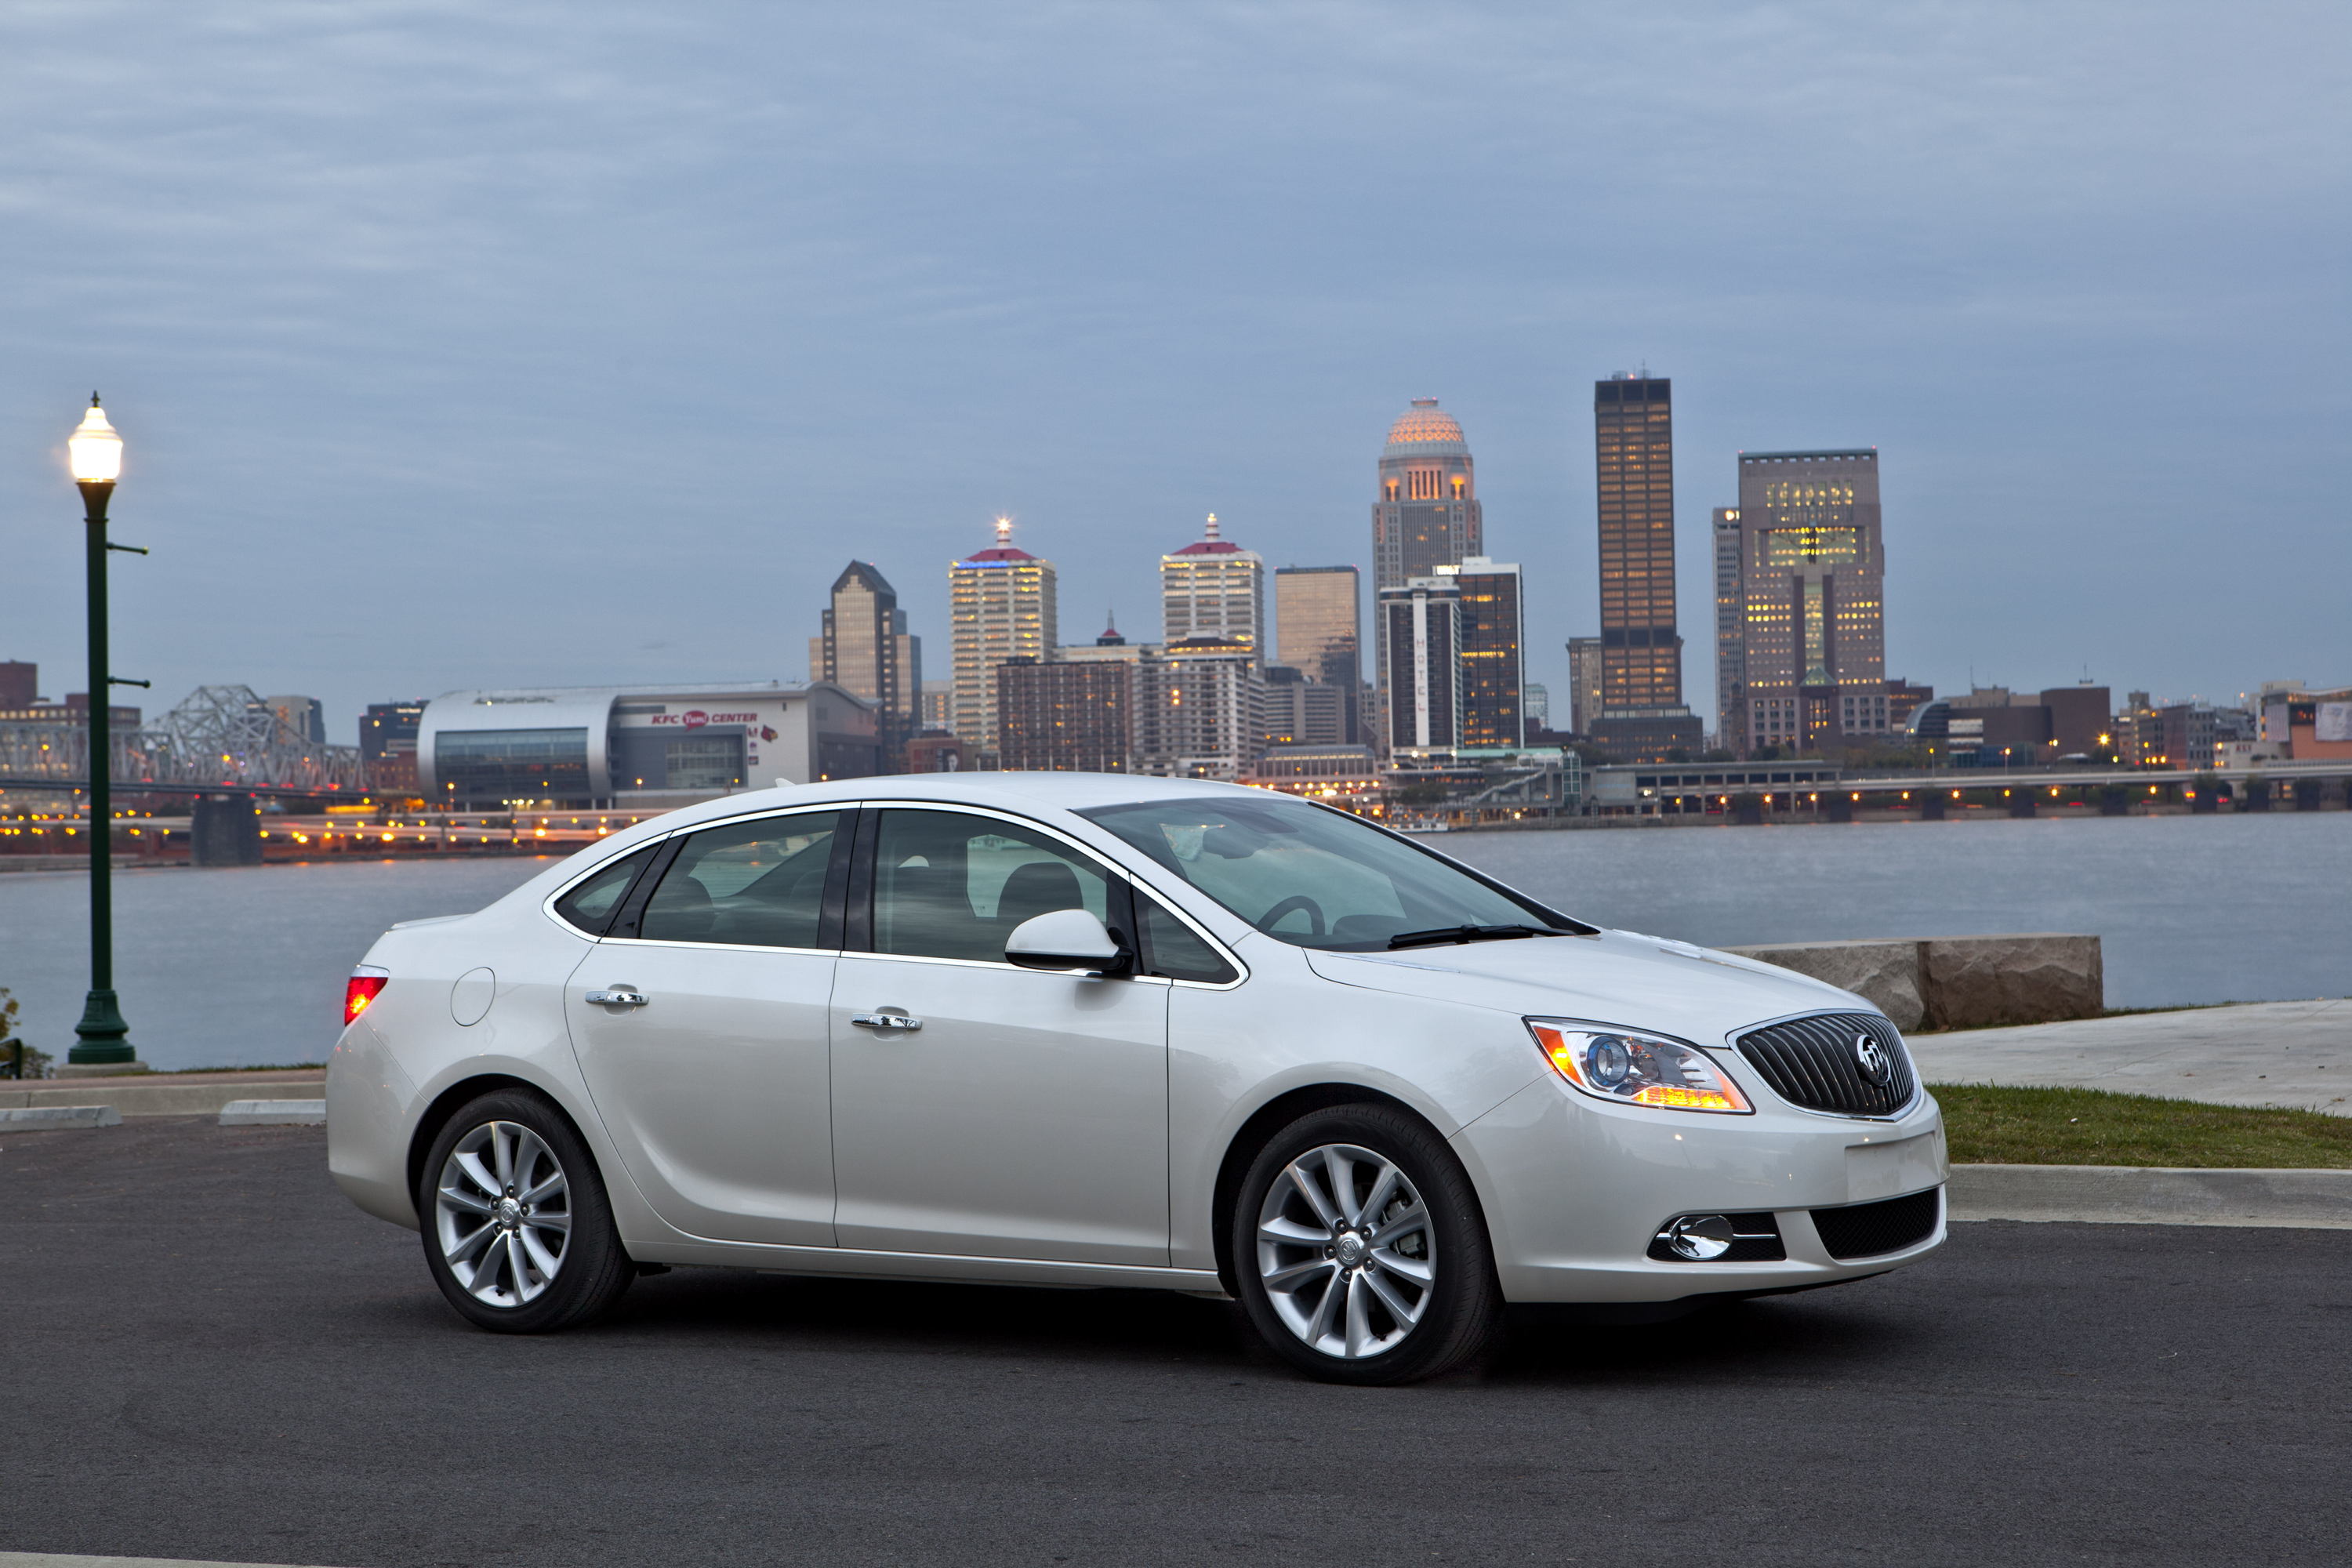 Buick Will Discontinue The Verano In 2017 Autoevolution